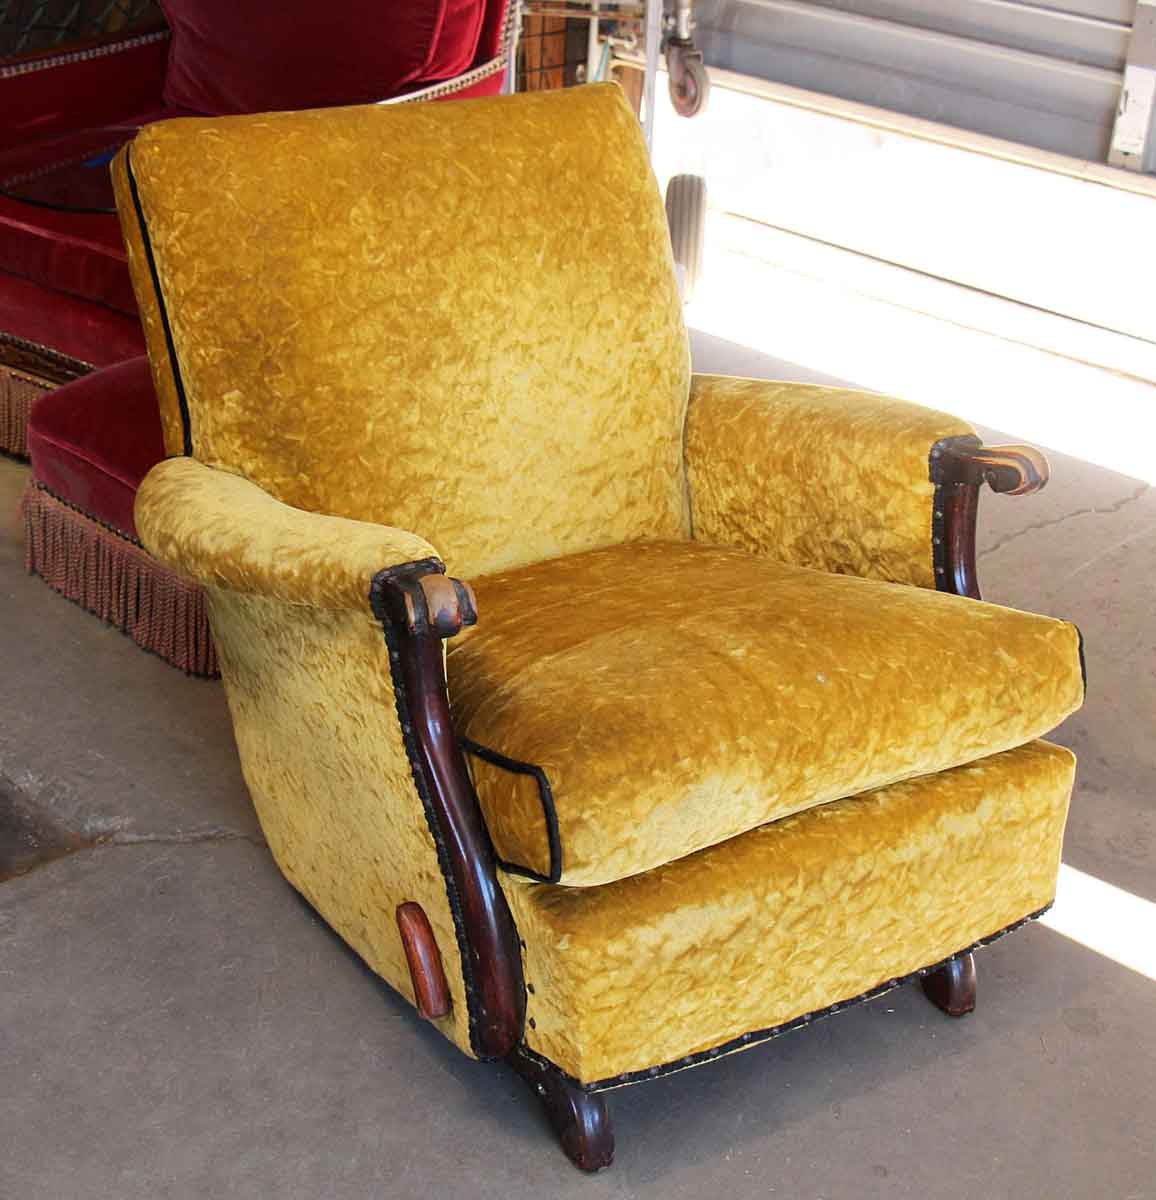 Antique Recliner with Crushed Yellow Velvet & Antique Recliner with Crushed Yellow Velvet | Olde Good Things islam-shia.org